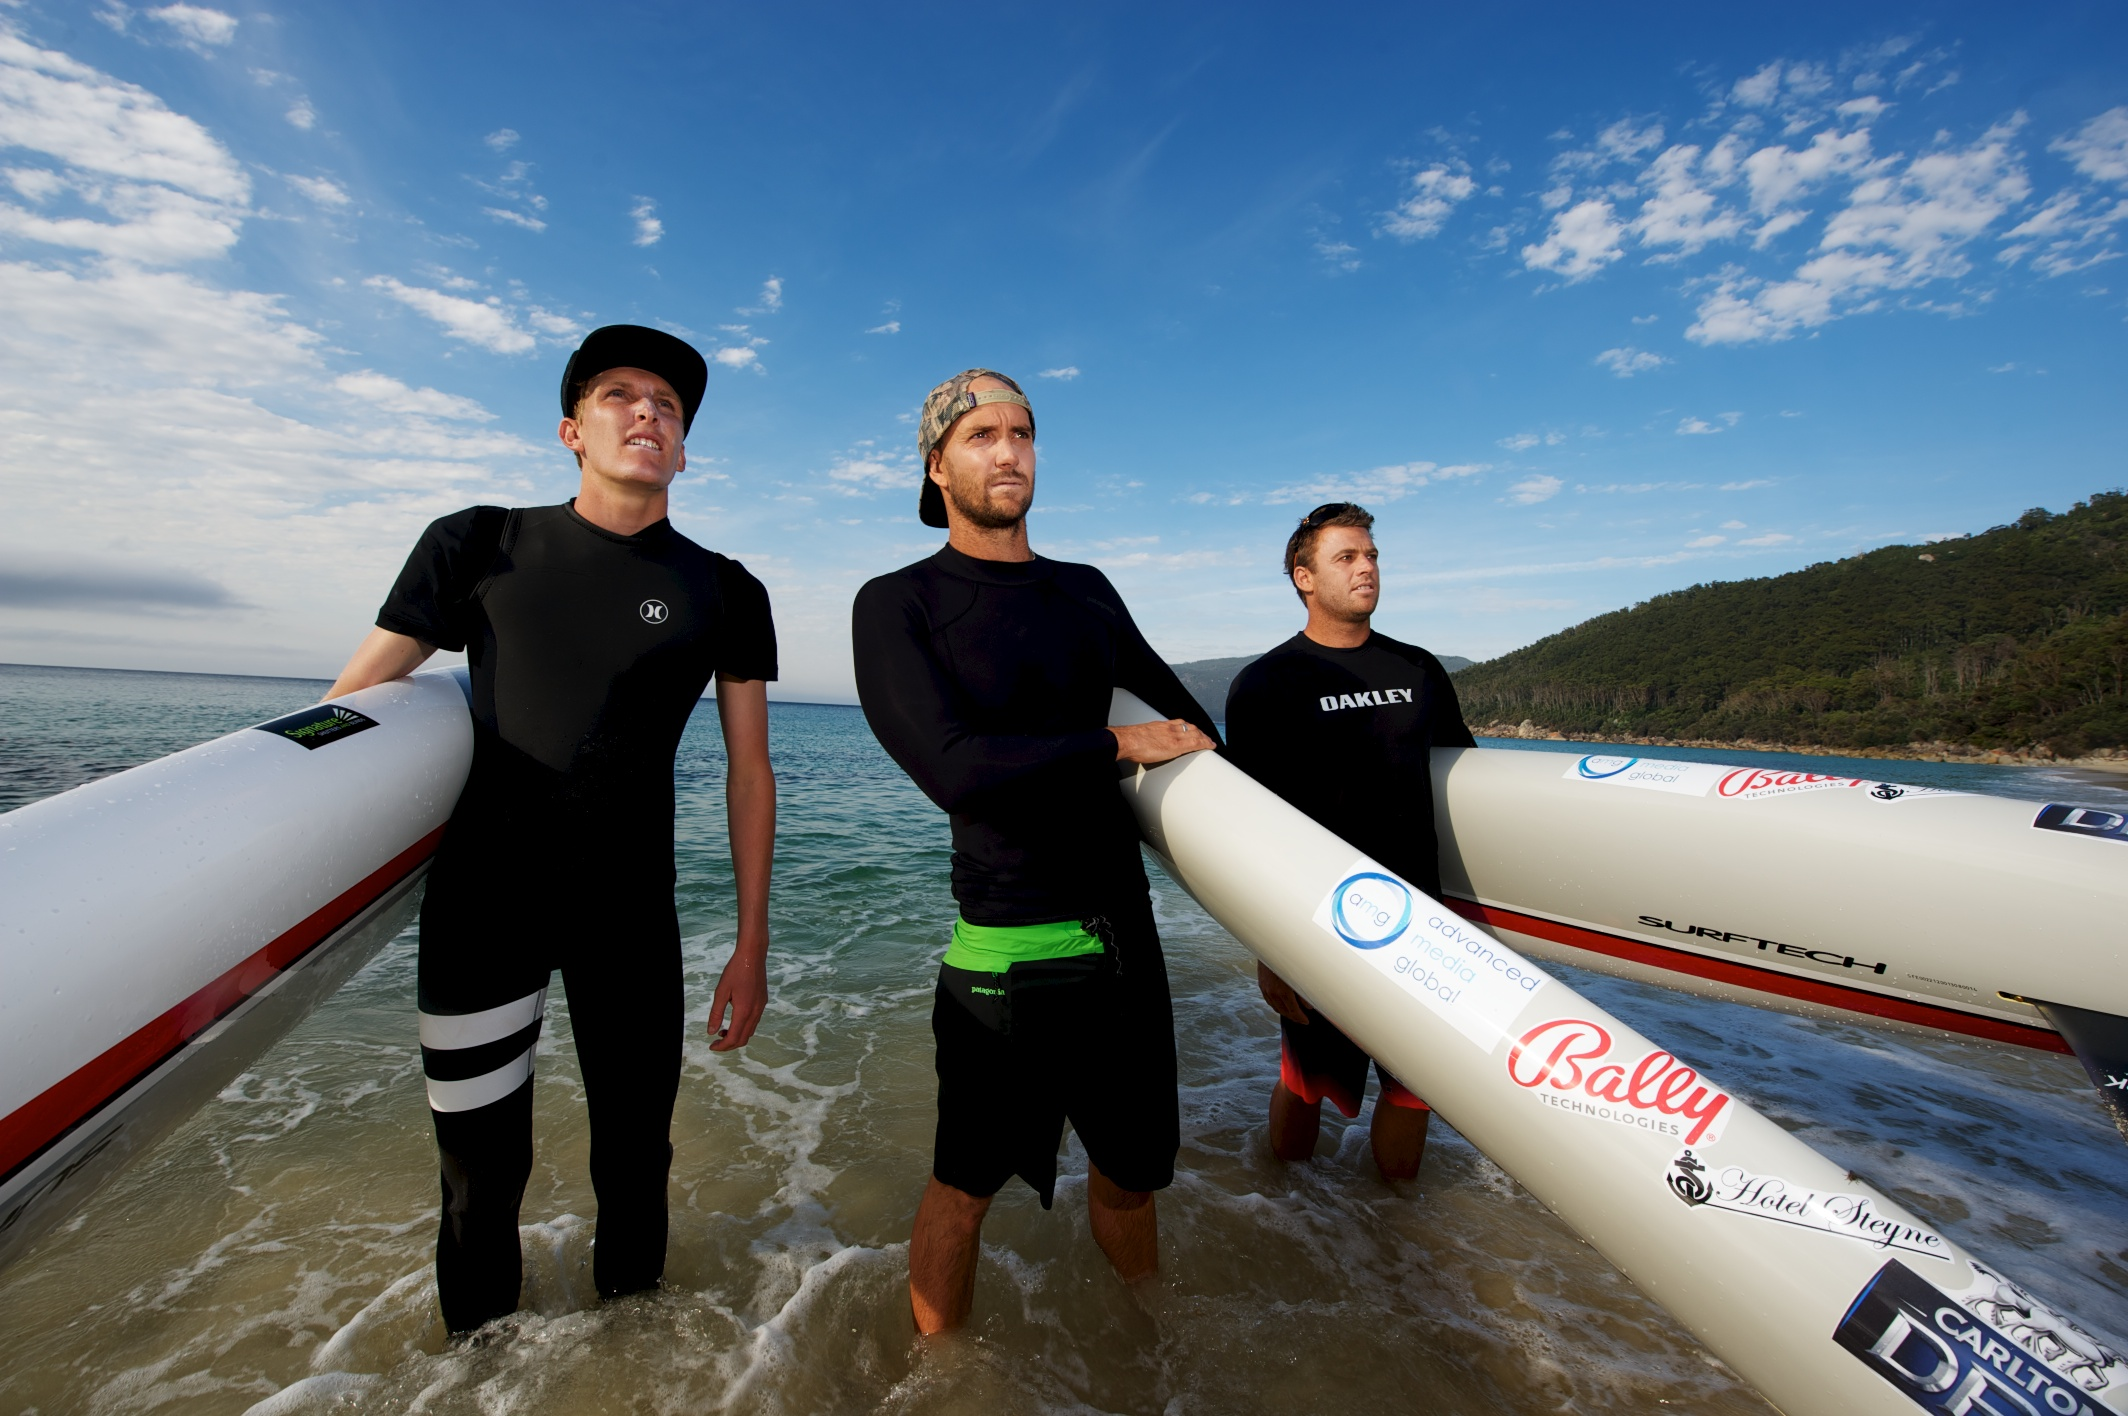 Tackling the Tasmanian devil-Jack Bark and two Aussies paddle across 190 miles of bad water, from from Australia to Tasmania